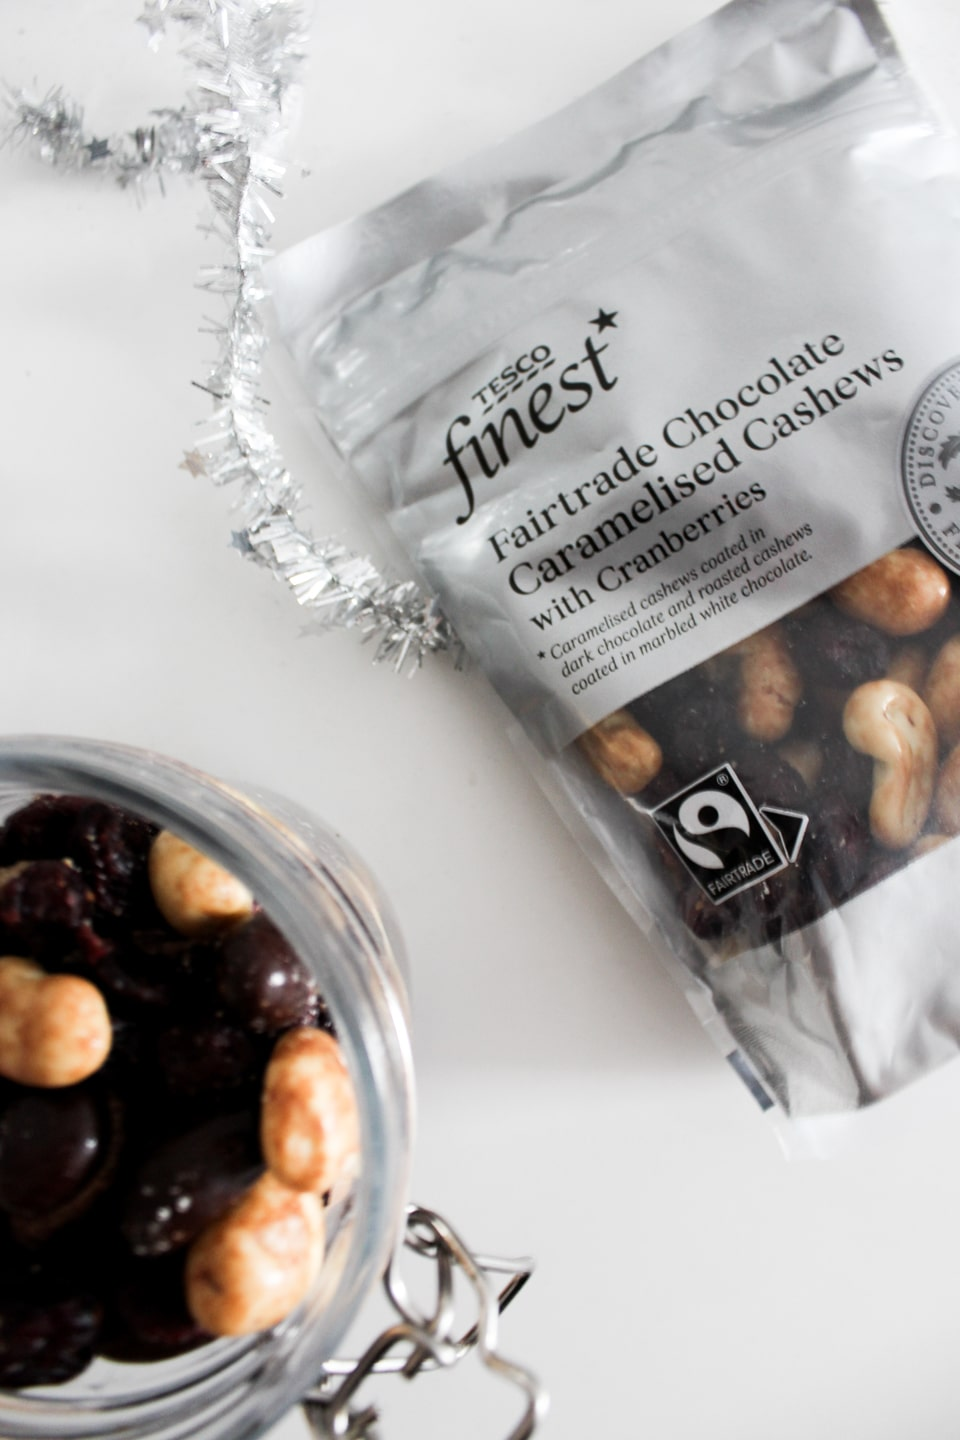 Fairtrade Chocolate Caramelised Cashews with Cranberries